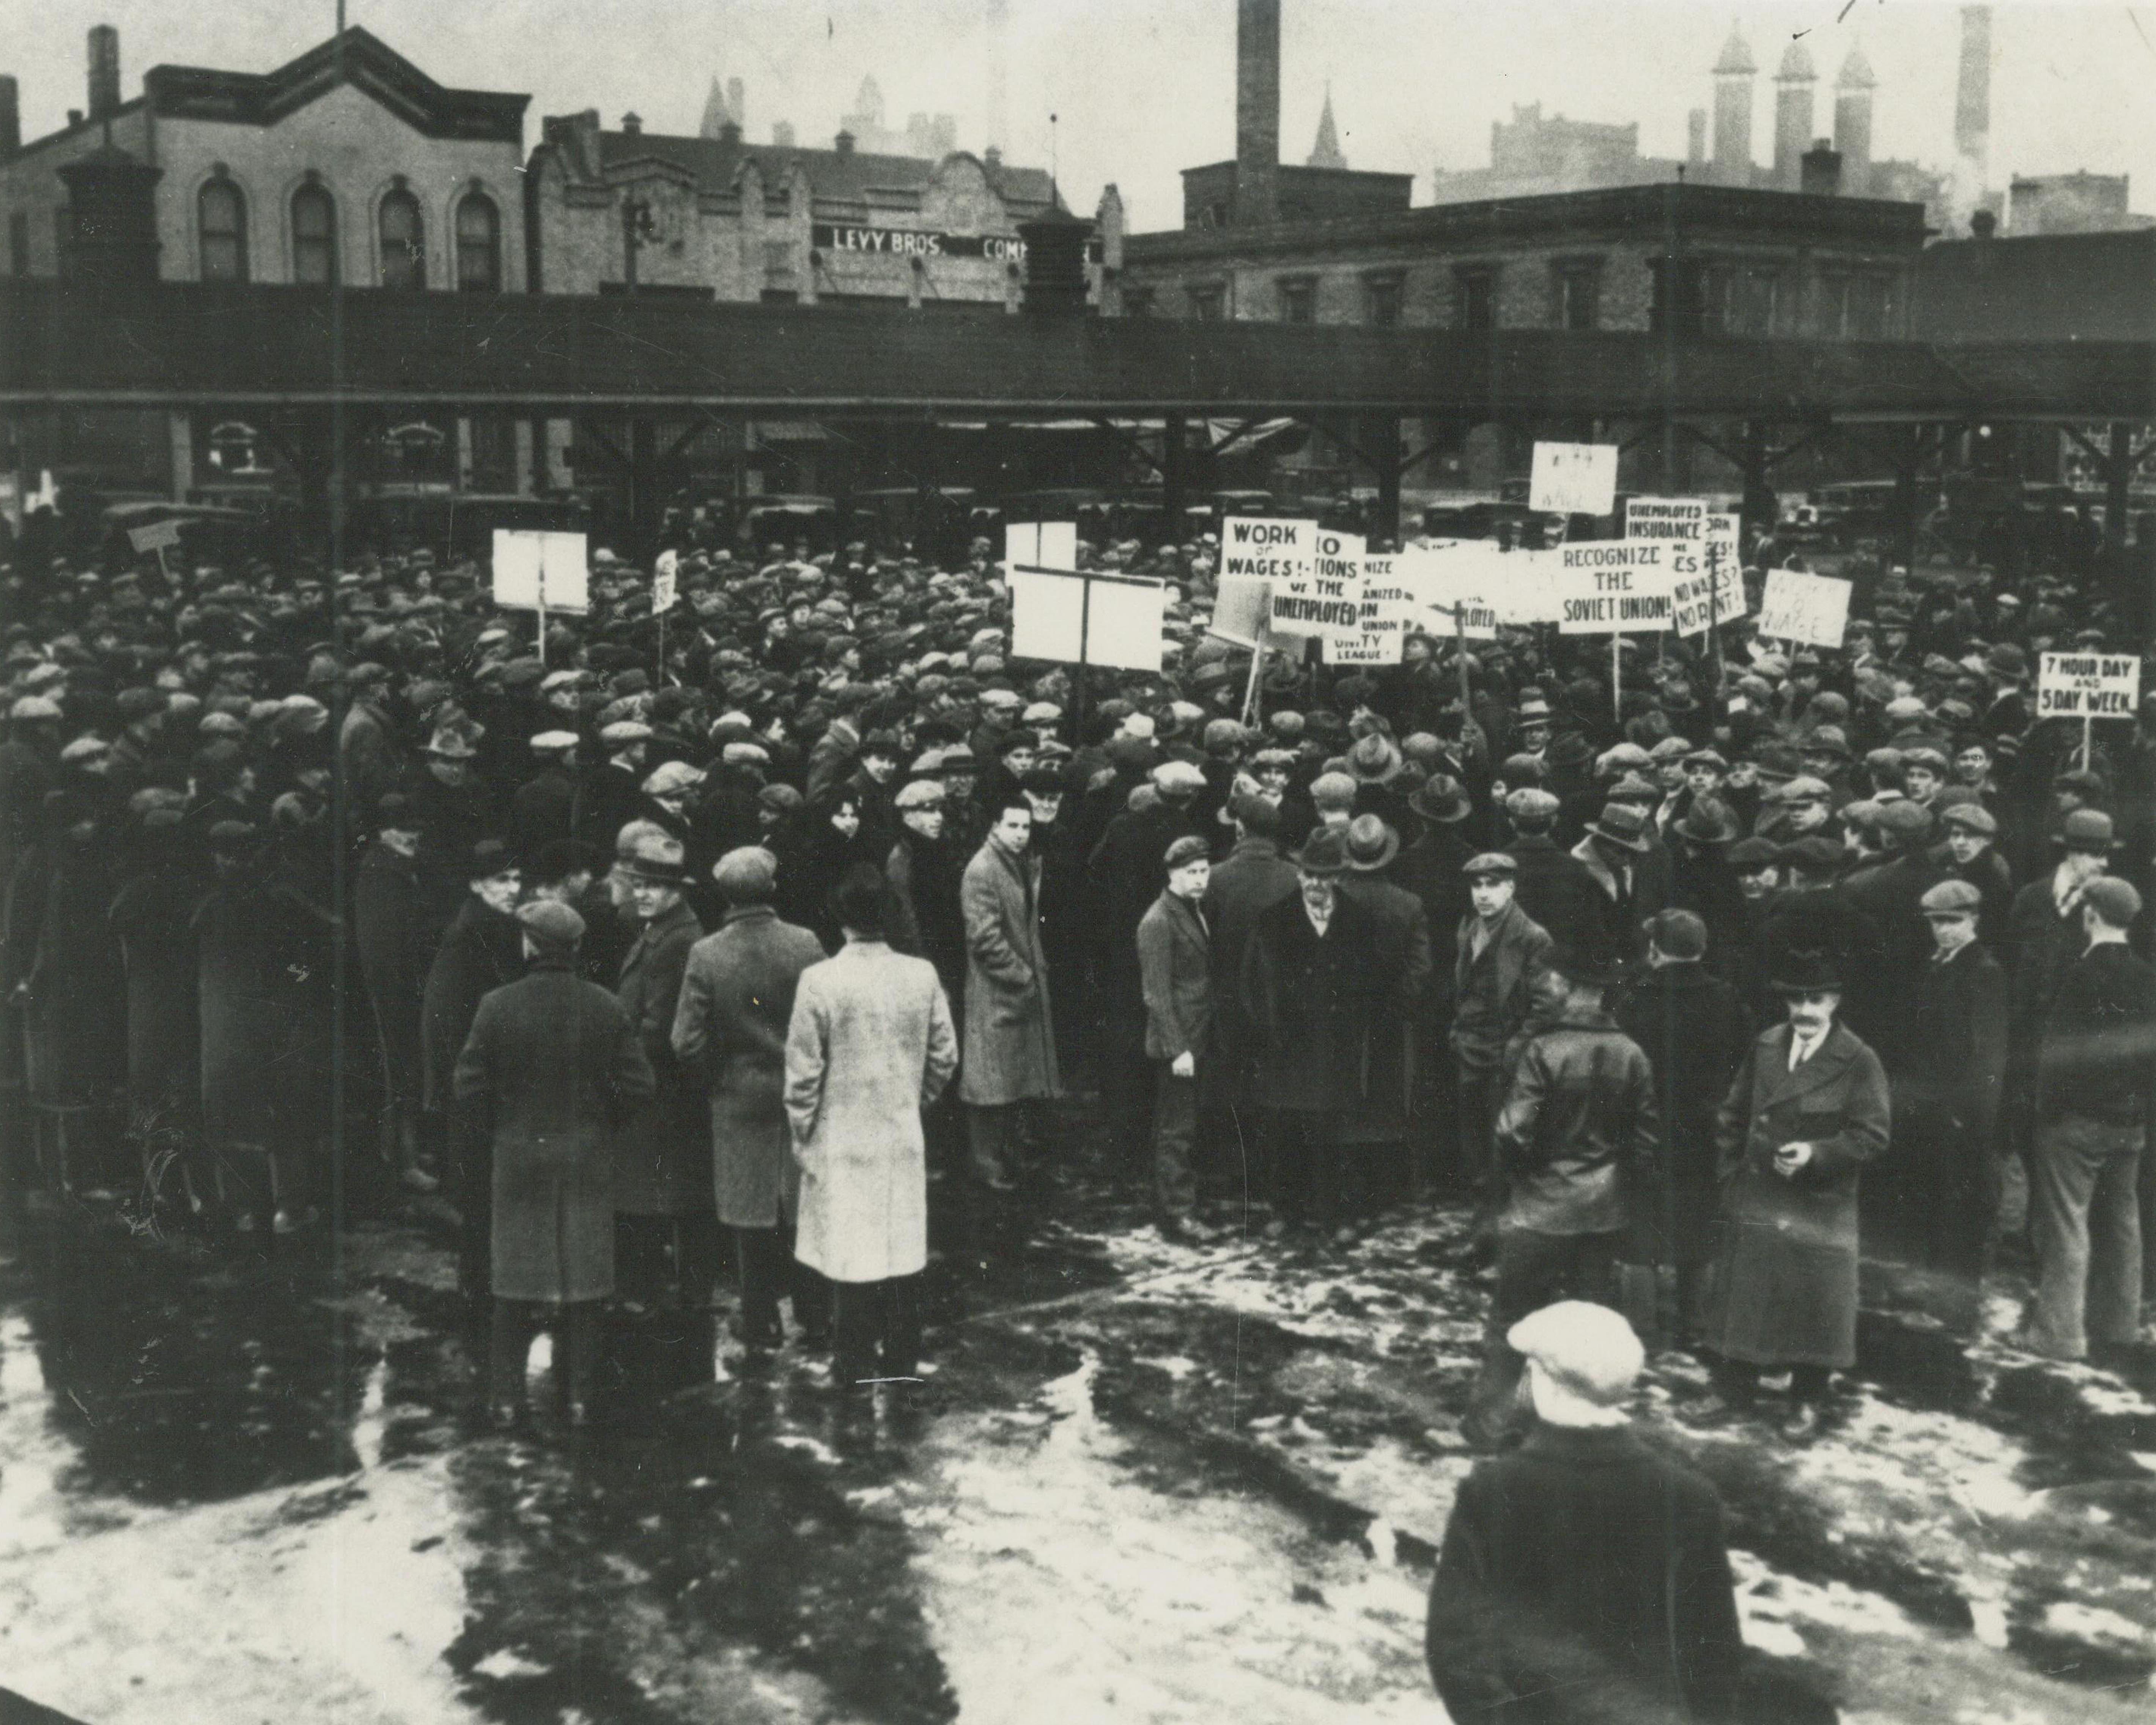 <table class=&quot;lightbox&quot;><tr><td colspan=2 class=&quot;lightbox-title&quot;>Protestors Gather in Haymarket Square</td></tr><tr><td colspan=2 class=&quot;lightbox-caption&quot;>A large group of demonstrators gathered in Haymarket Square on February 13, 1930 to listen to Communist speakers, protest working conditions, and call for the recognition of the Soviet Union.</td></tr><tr><td colspan=2 class=&quot;lightbox-spacer&quot;></td></tr><tr class=&quot;lightbox-detail&quot;><td class=&quot;cell-title&quot;>Source: </td><td class=&quot;cell-value&quot;>From the Historic Photo Collection of the Milwaukee Public Library. Reprinted with permission.<br /><a href=&quot;http://content.mpl.org/cdm/singleitem/collection/HstoricPho/id/3968/rec/2&quot; target=&quot;_blank&quot;>Milwaukee Public Library</a></td></tr><tr class=&quot;filler-row&quot;><td colspan=2>&nbsp;</td></tr></table>